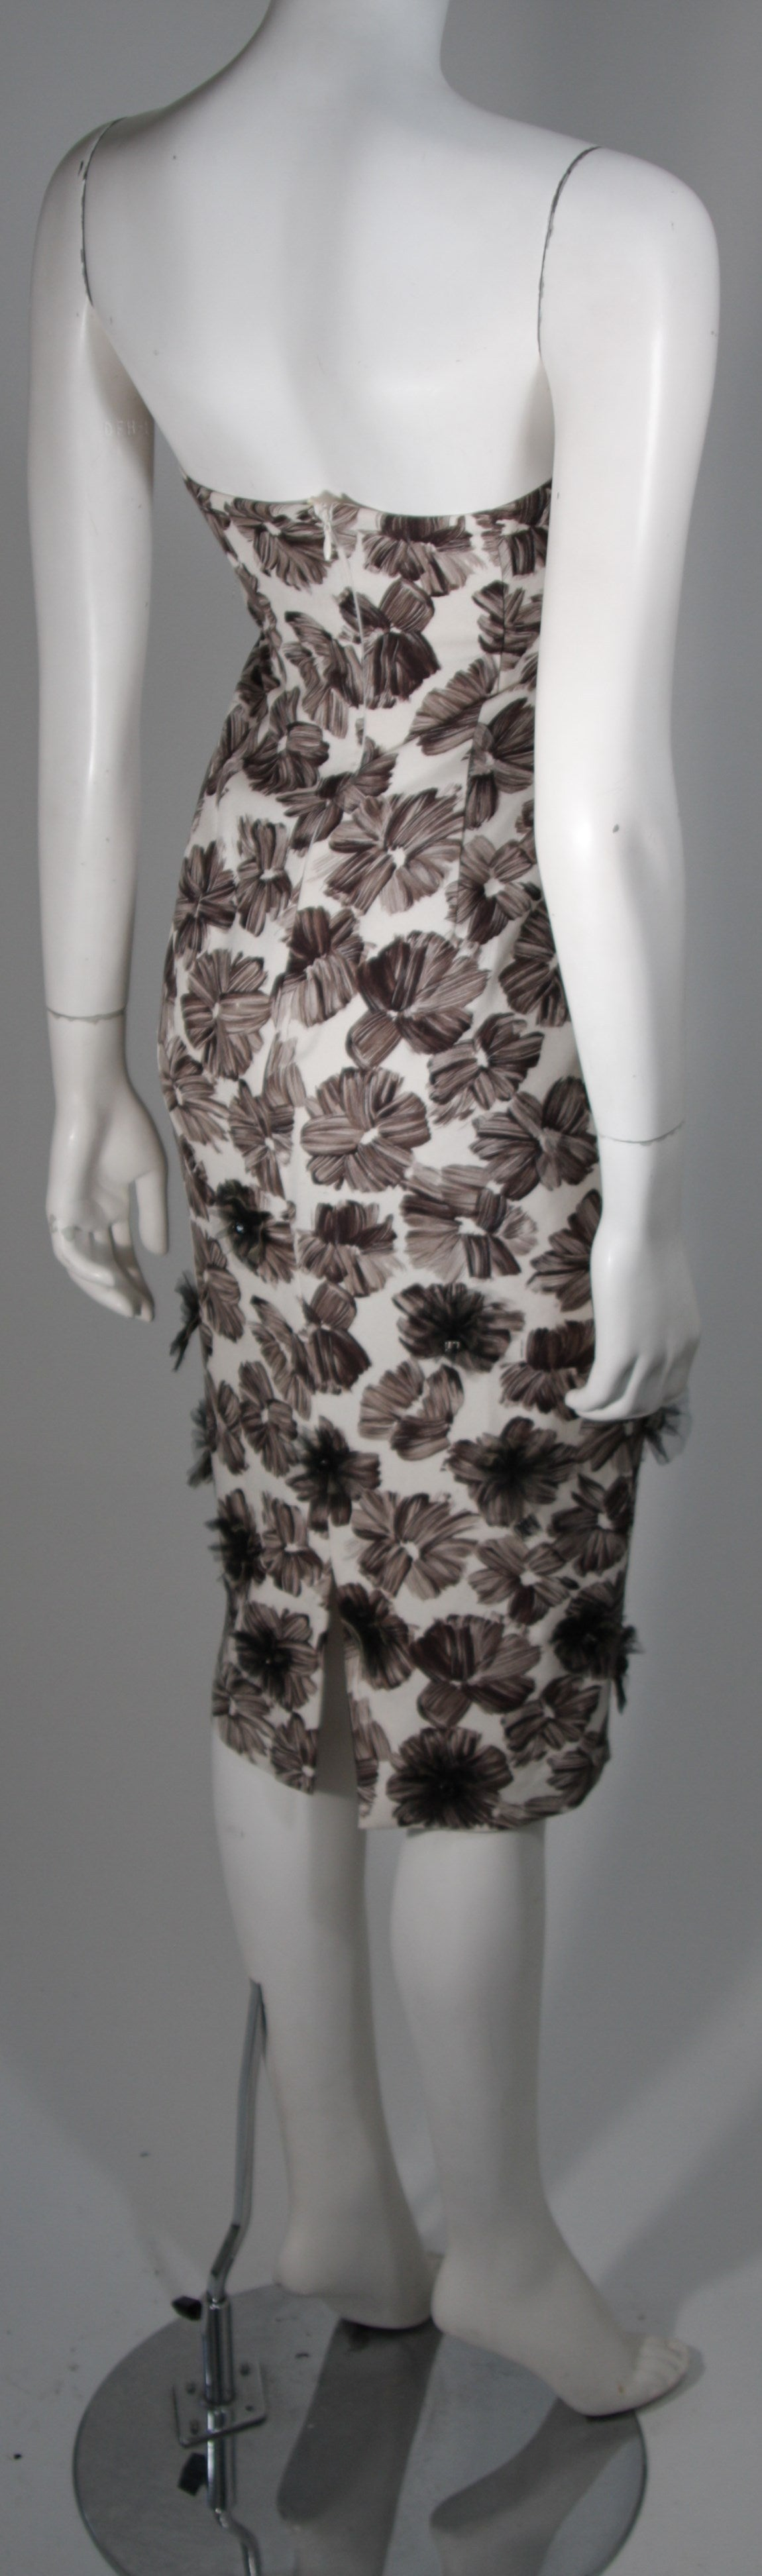 GIAMBATTISTA VALLI White Strapless Floral Print Rhinestone Detail Dress Size 40 For Sale 1